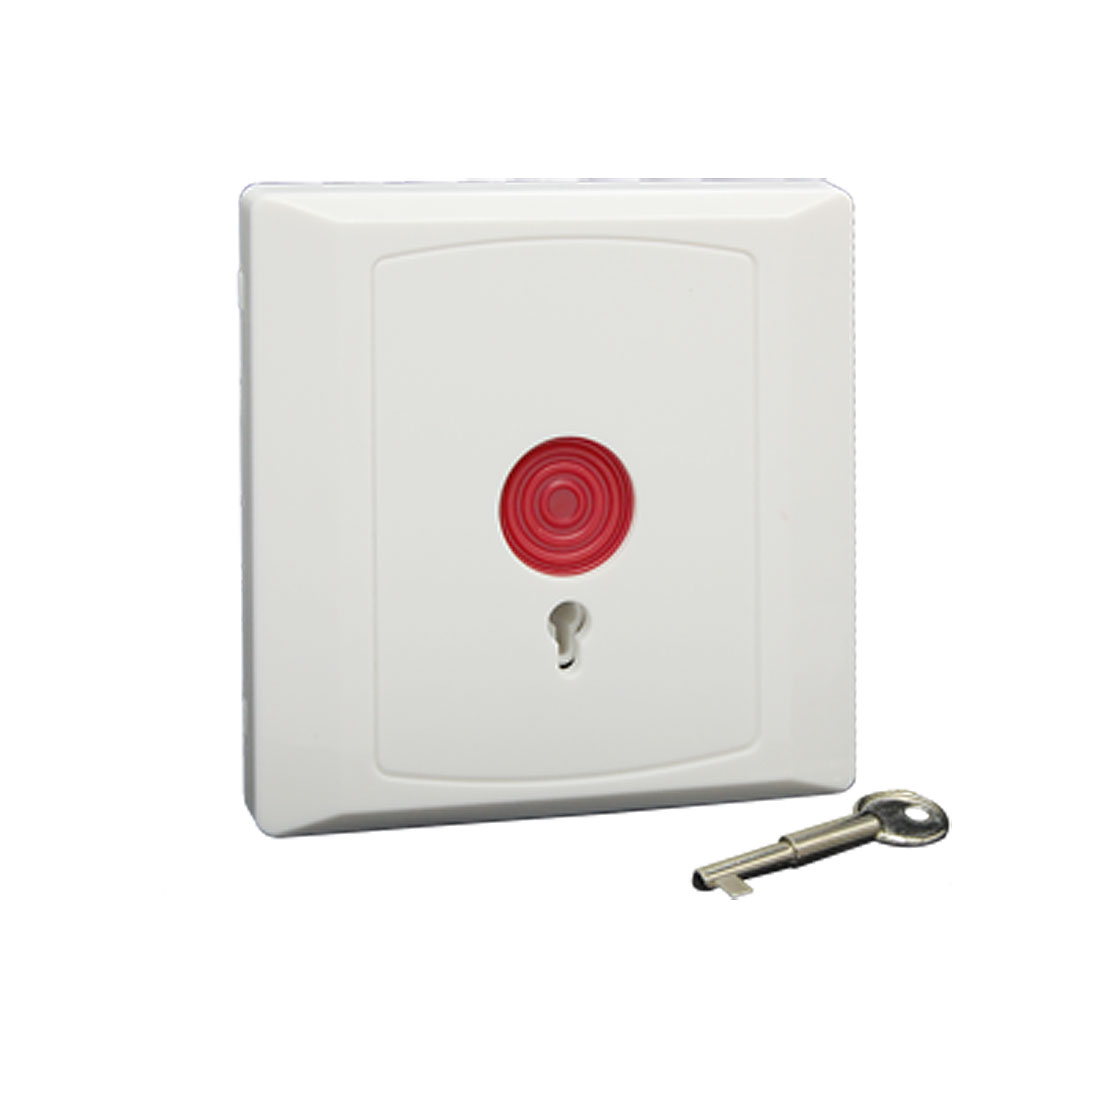 Square Family Office Emergency Panic Button White